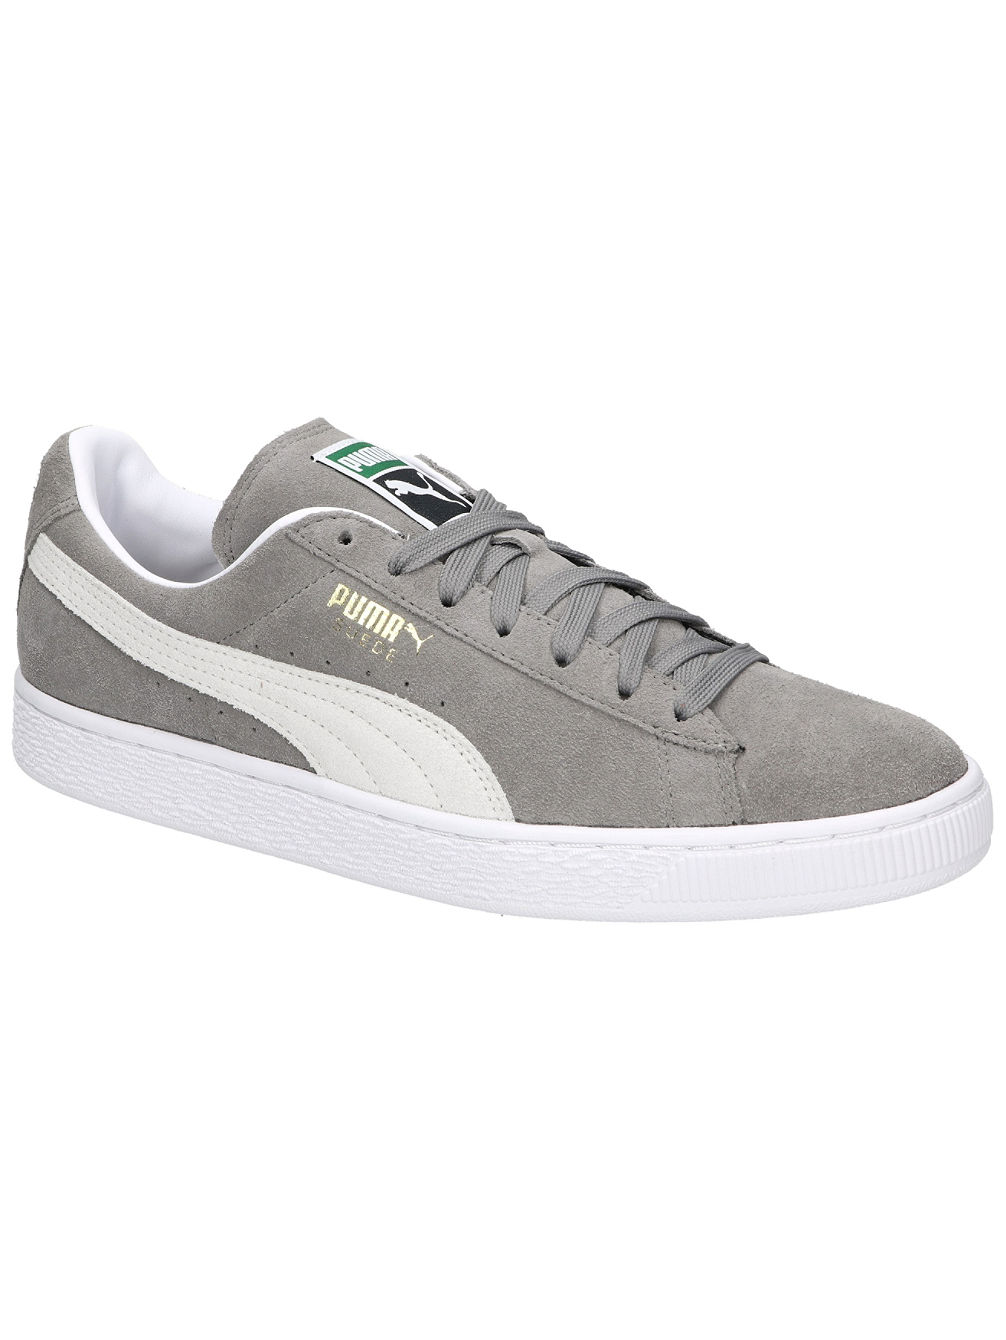 448b17a874b674 Buy Puma Suede Classic+ Sneakers online at blue-tomato.com